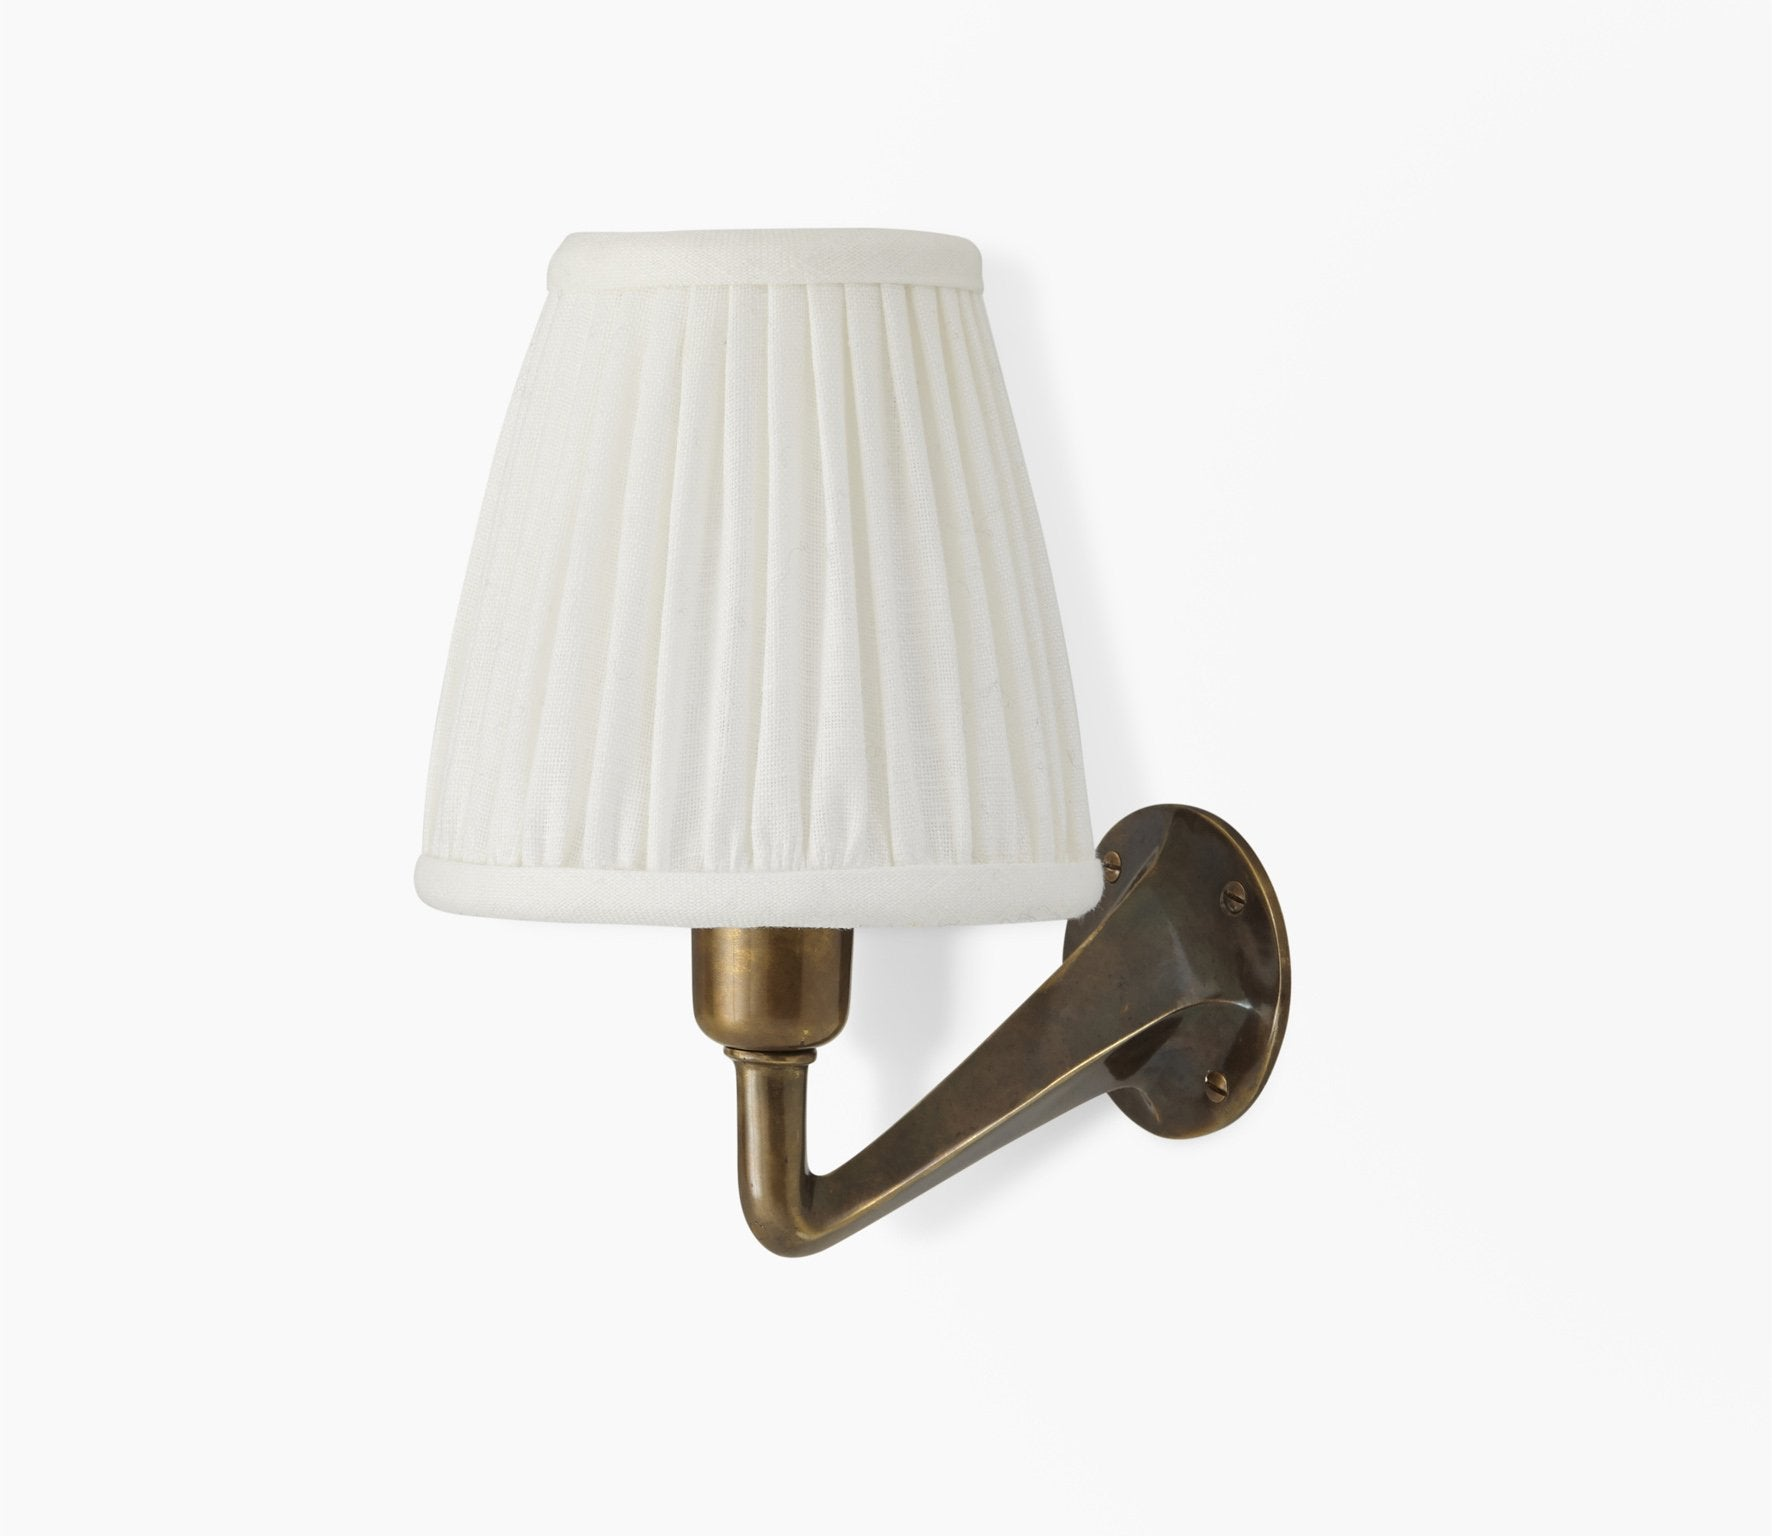 Leila Wall Light with Gathered Empire Shade Product Image 2